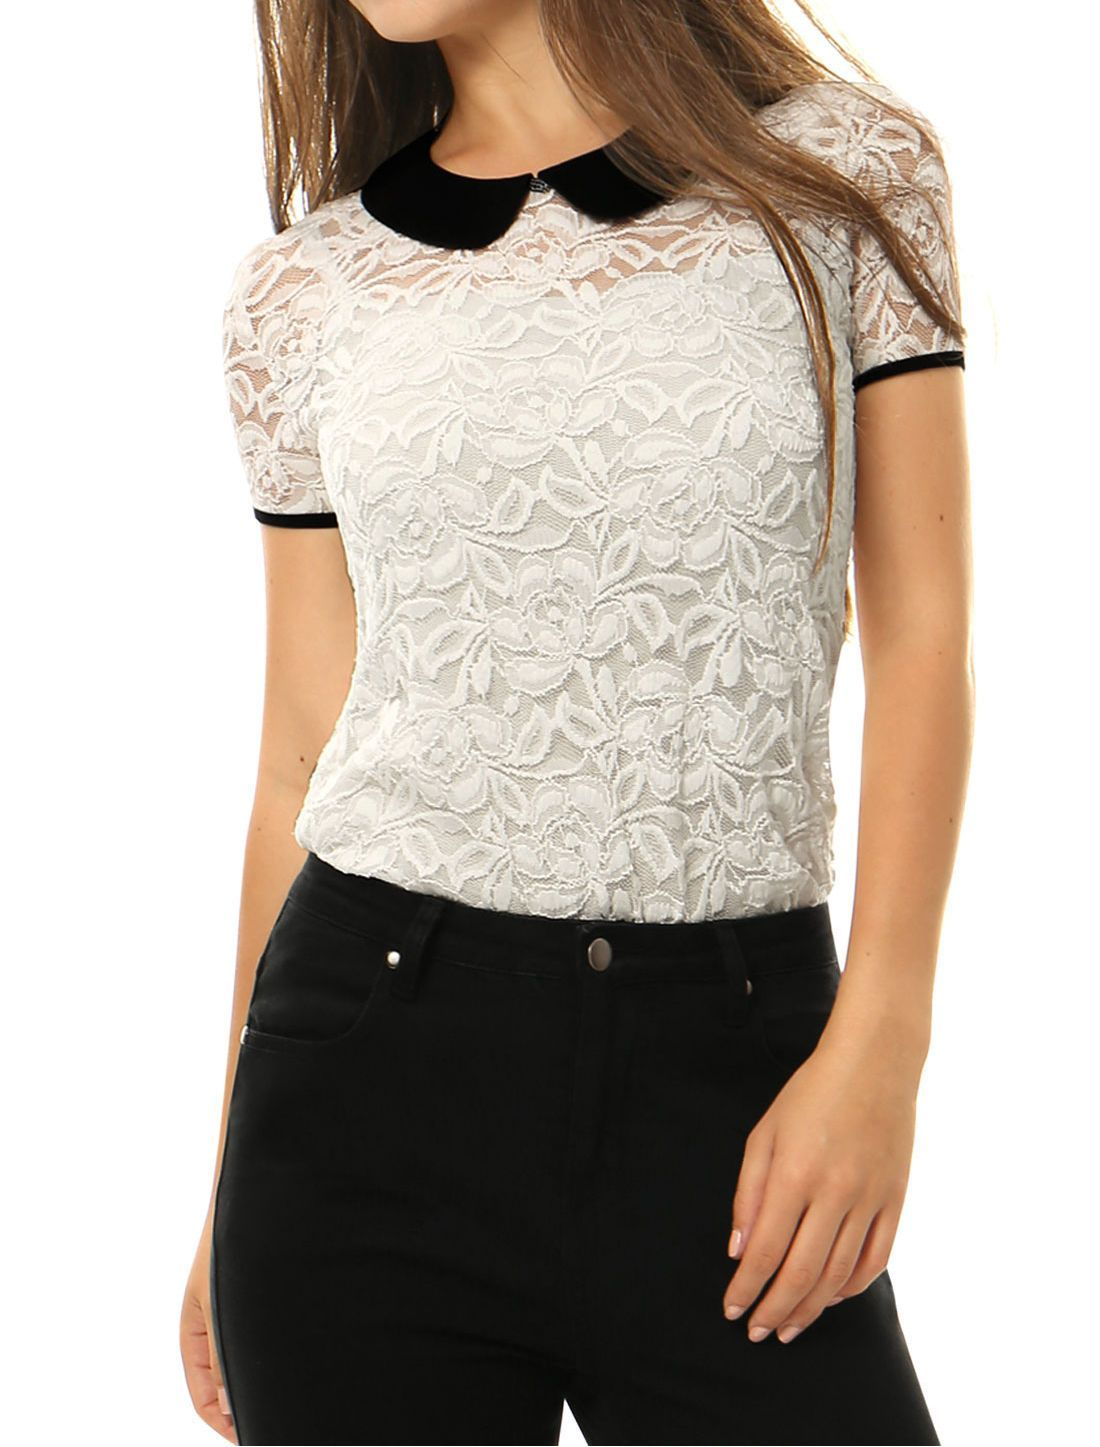 12a6e3ff0ad259 Allegra K Women See Through Contrast Peter Pan Collar Lace Top ...